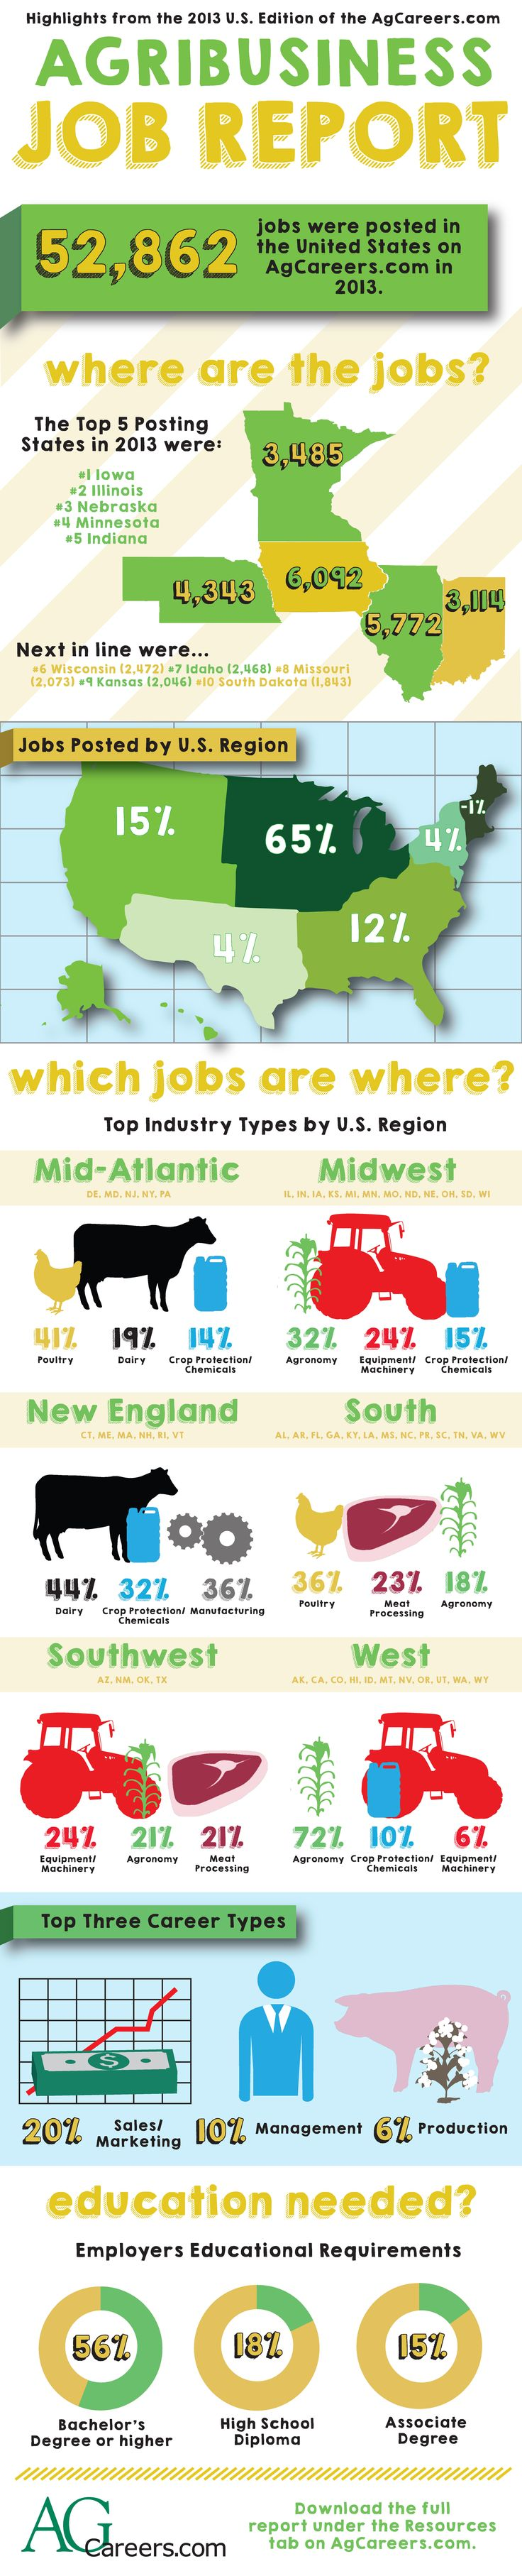 2013 AgCareers.com US Agribusiness Job Report. Stats taken from AgCareers.com. Download the full report: http://www.agcareers.com/us-job-outlook.cfm?year=2013